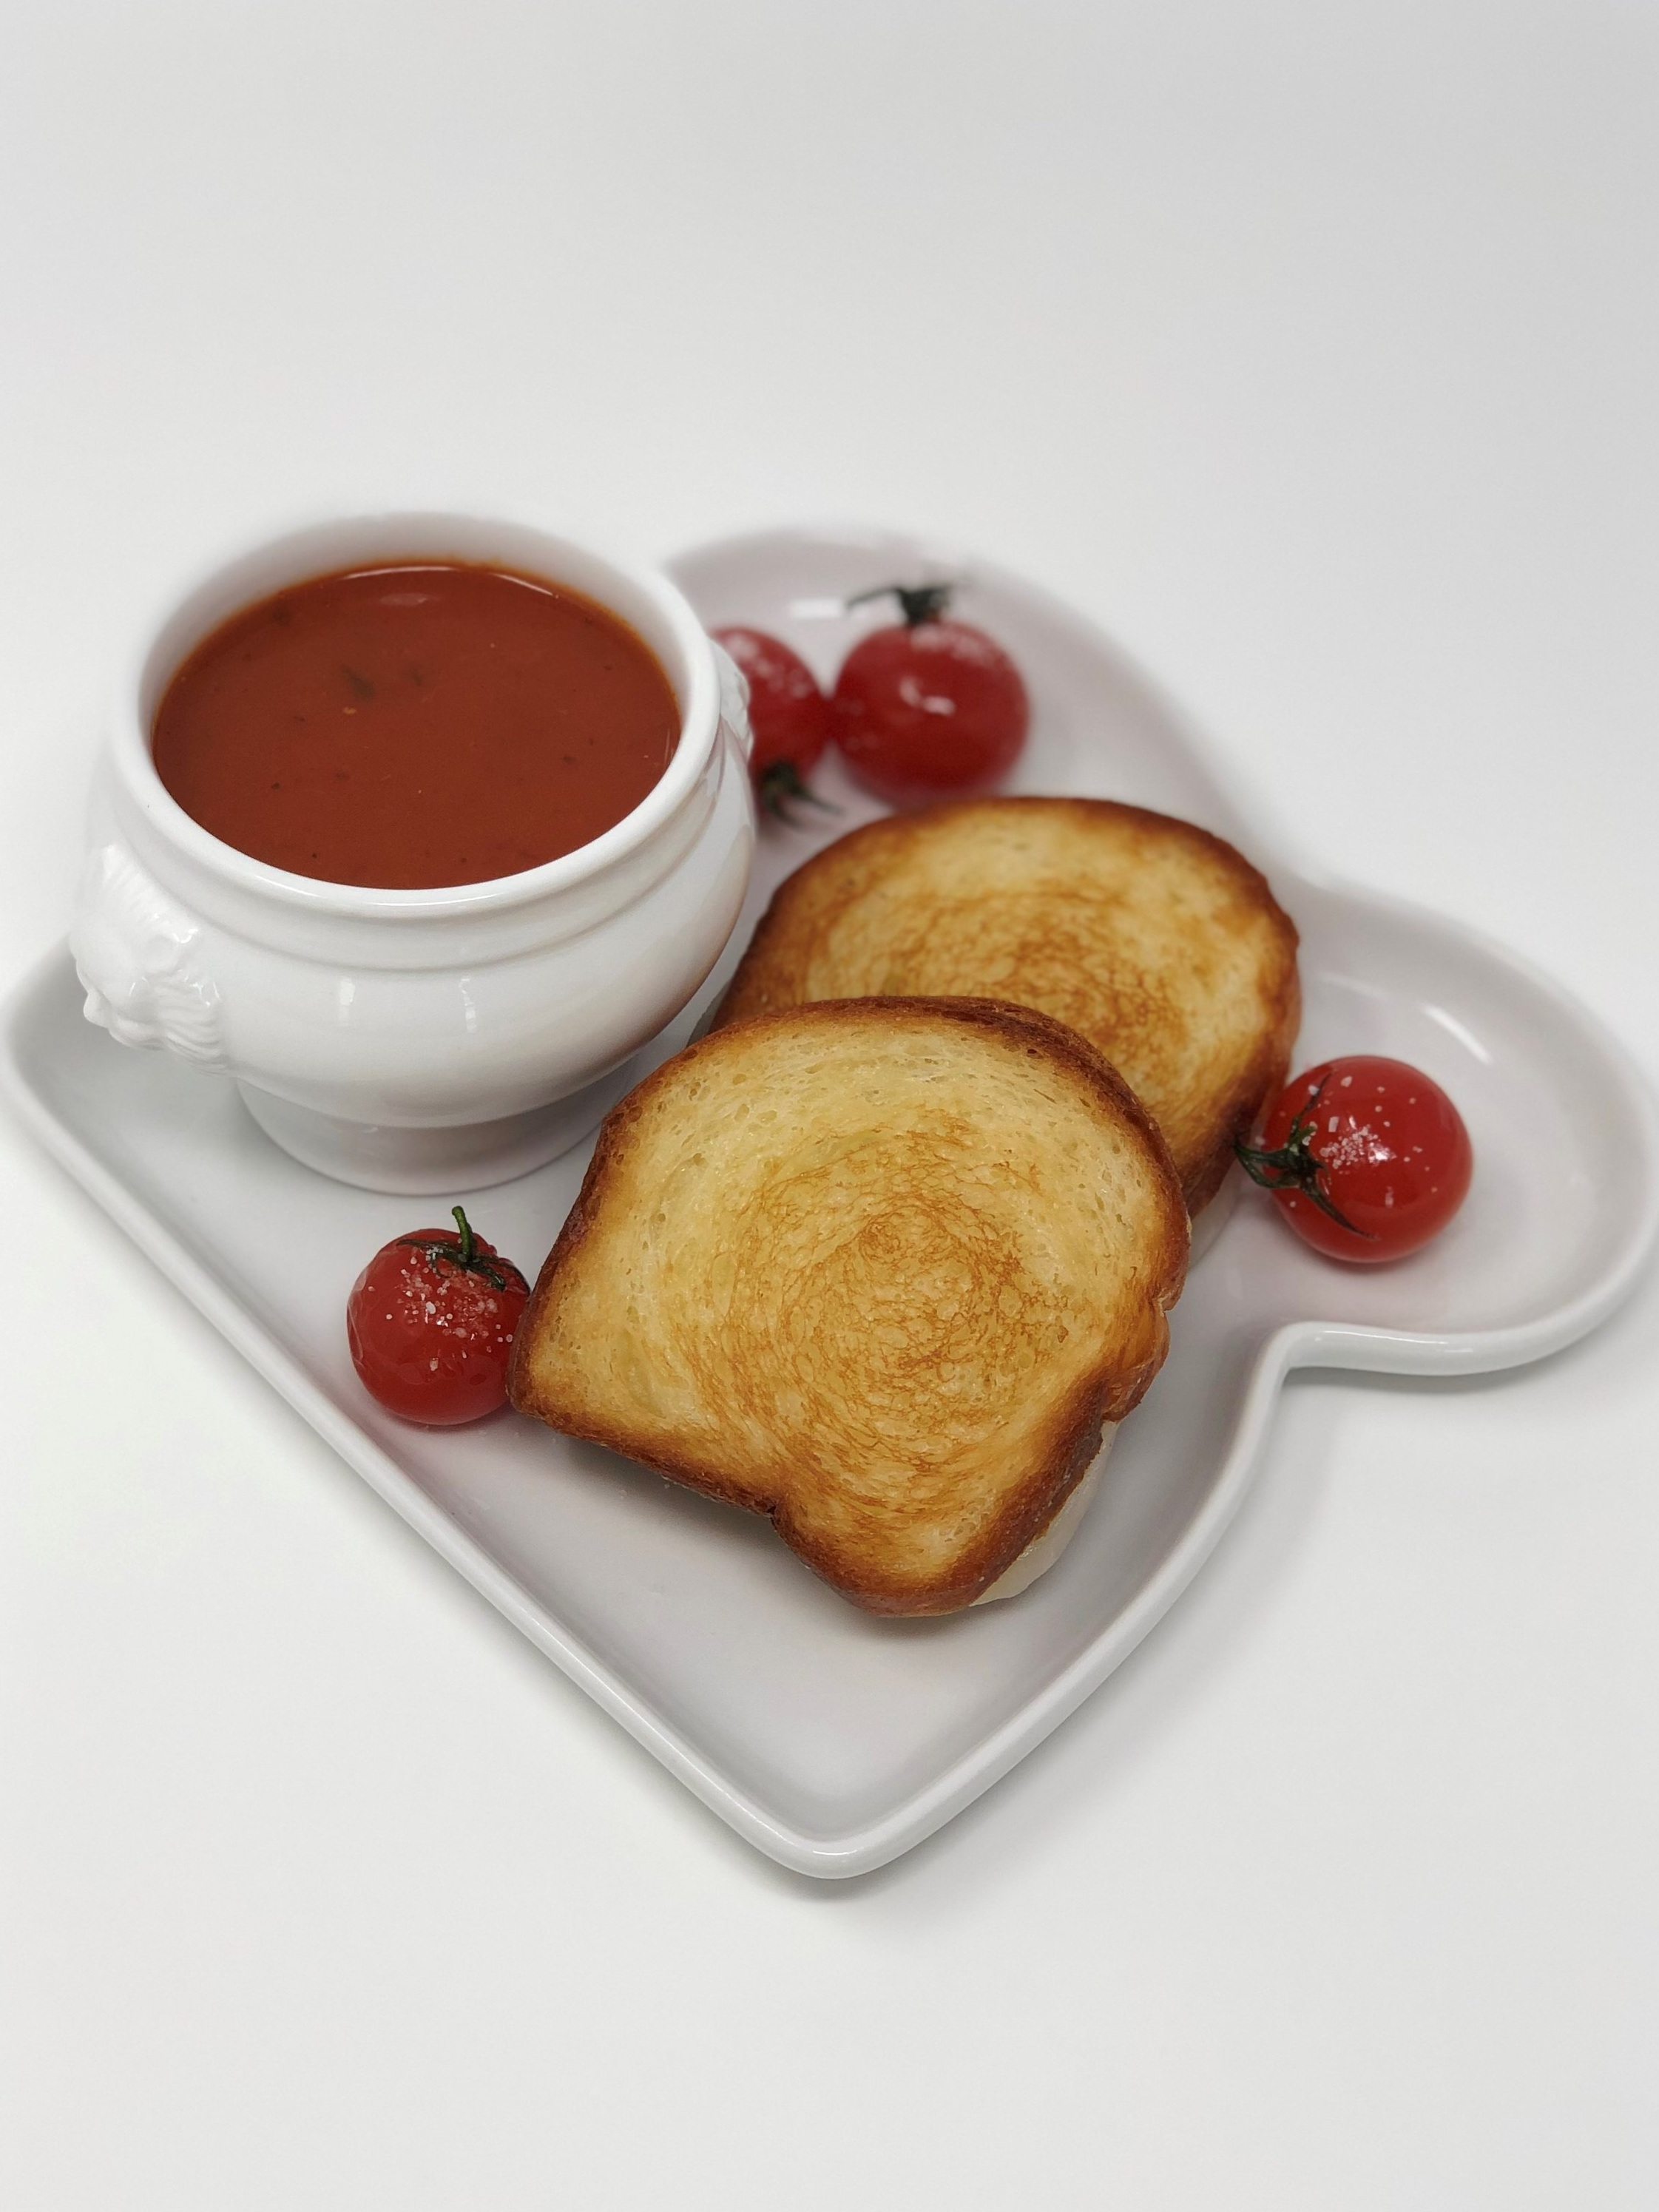 Tomato & Basil Soup with Truffled Grilled Cheese Sandwich